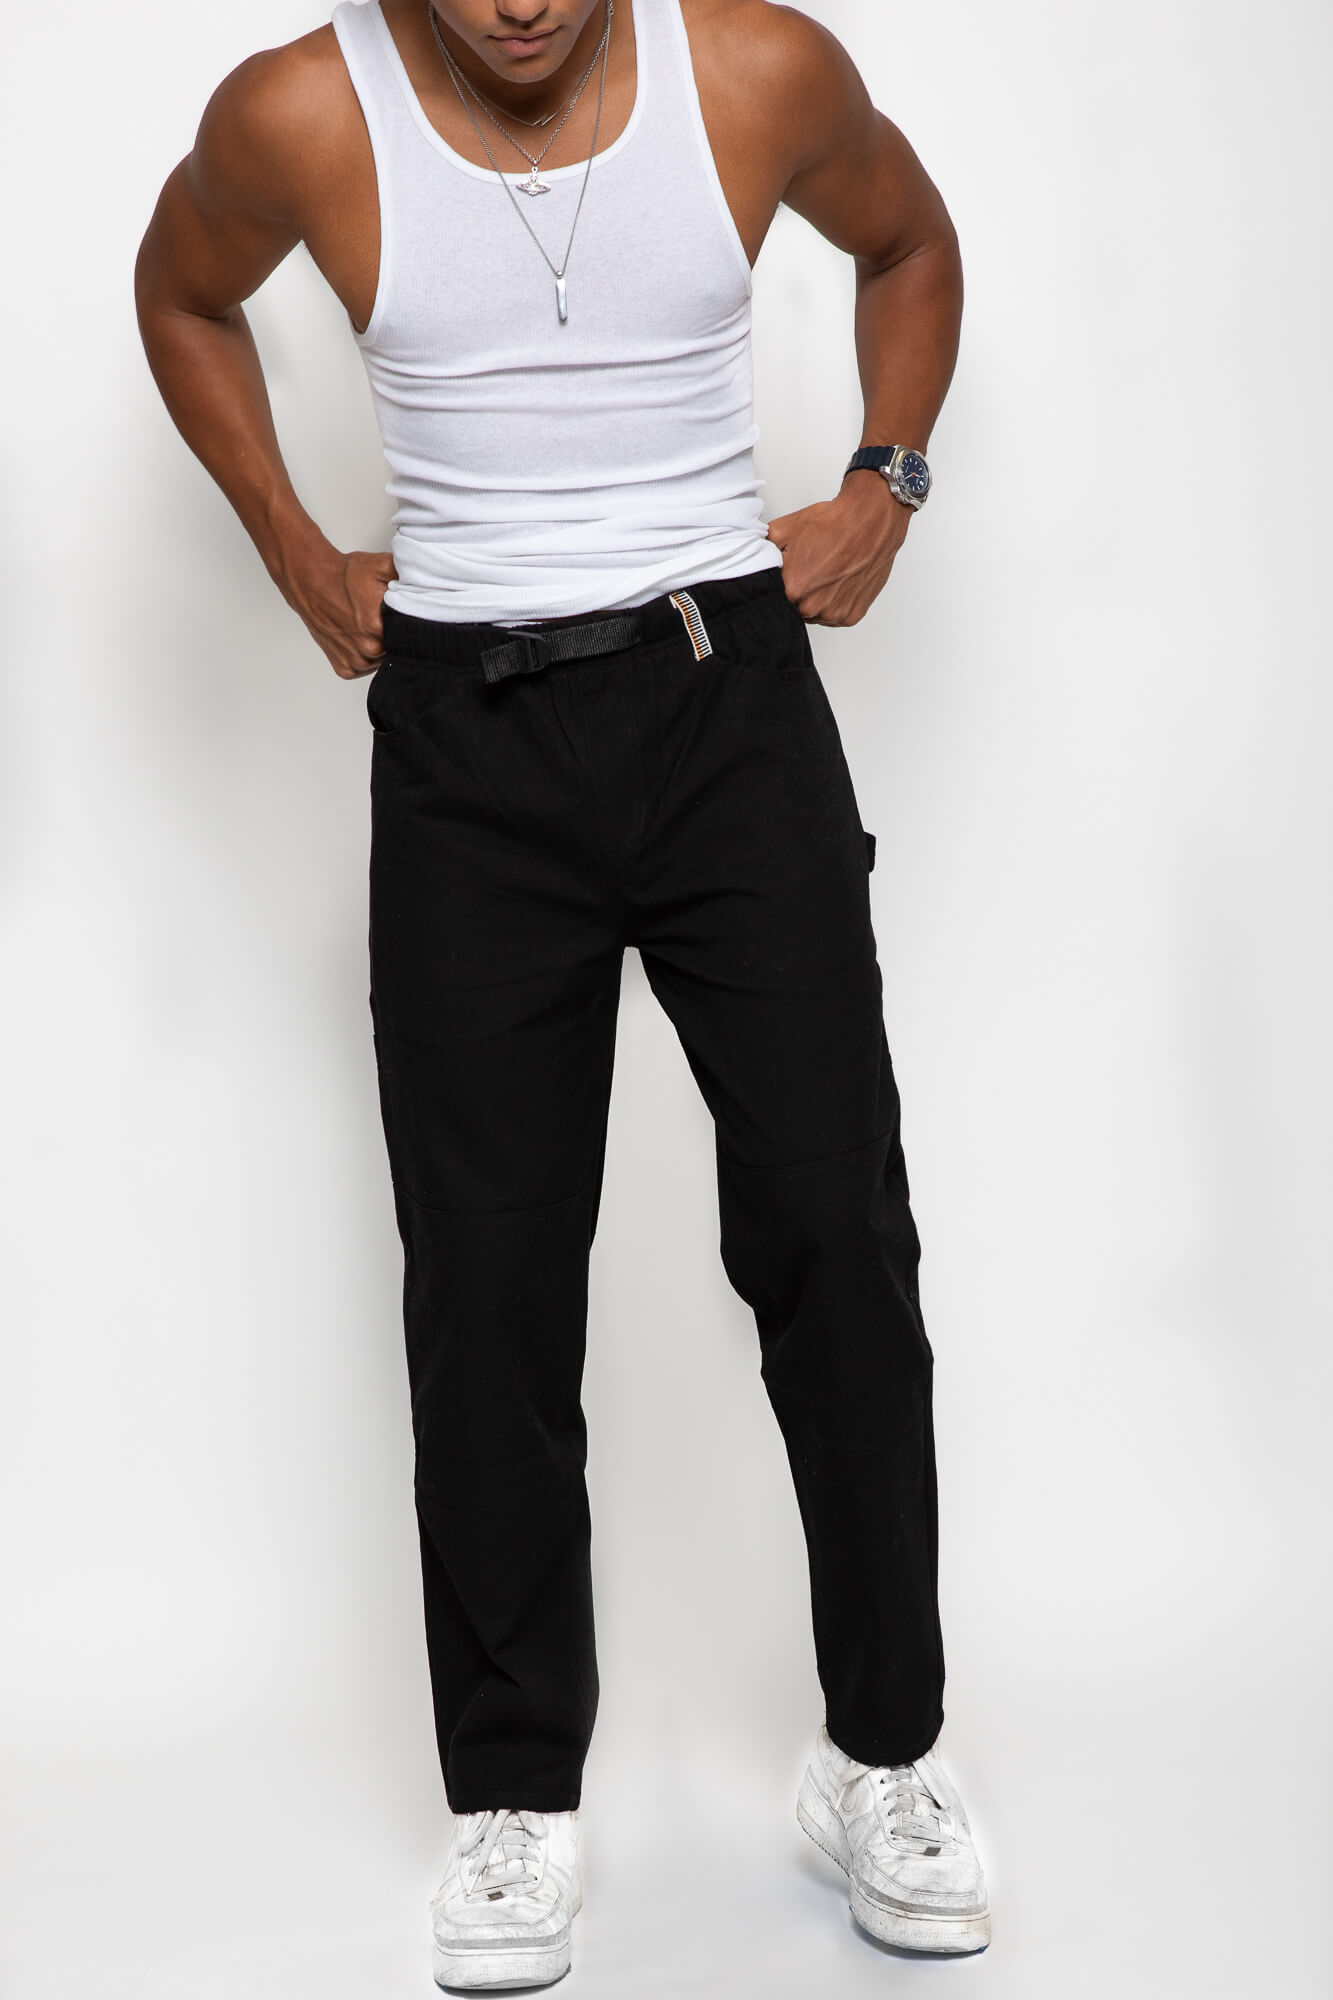 front view of a male model wearing the black wood worker pants with a white tank top